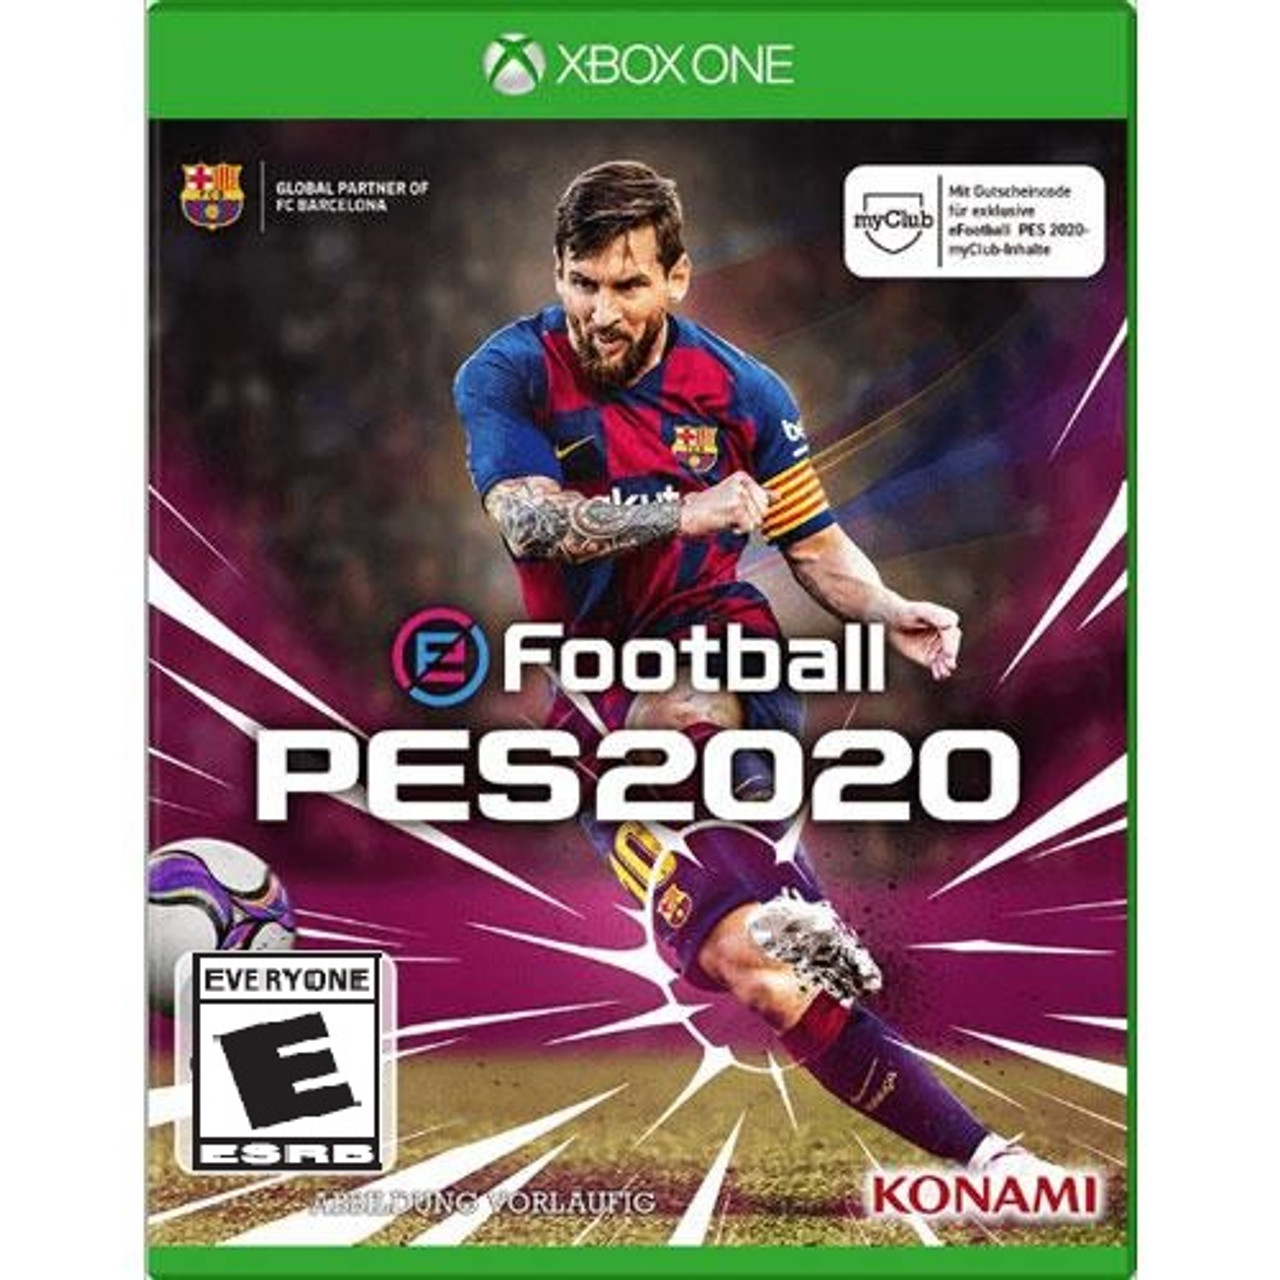 Xbox One 2020 Games.Efootball Pro Evolution Soccer 2020 Xbox One